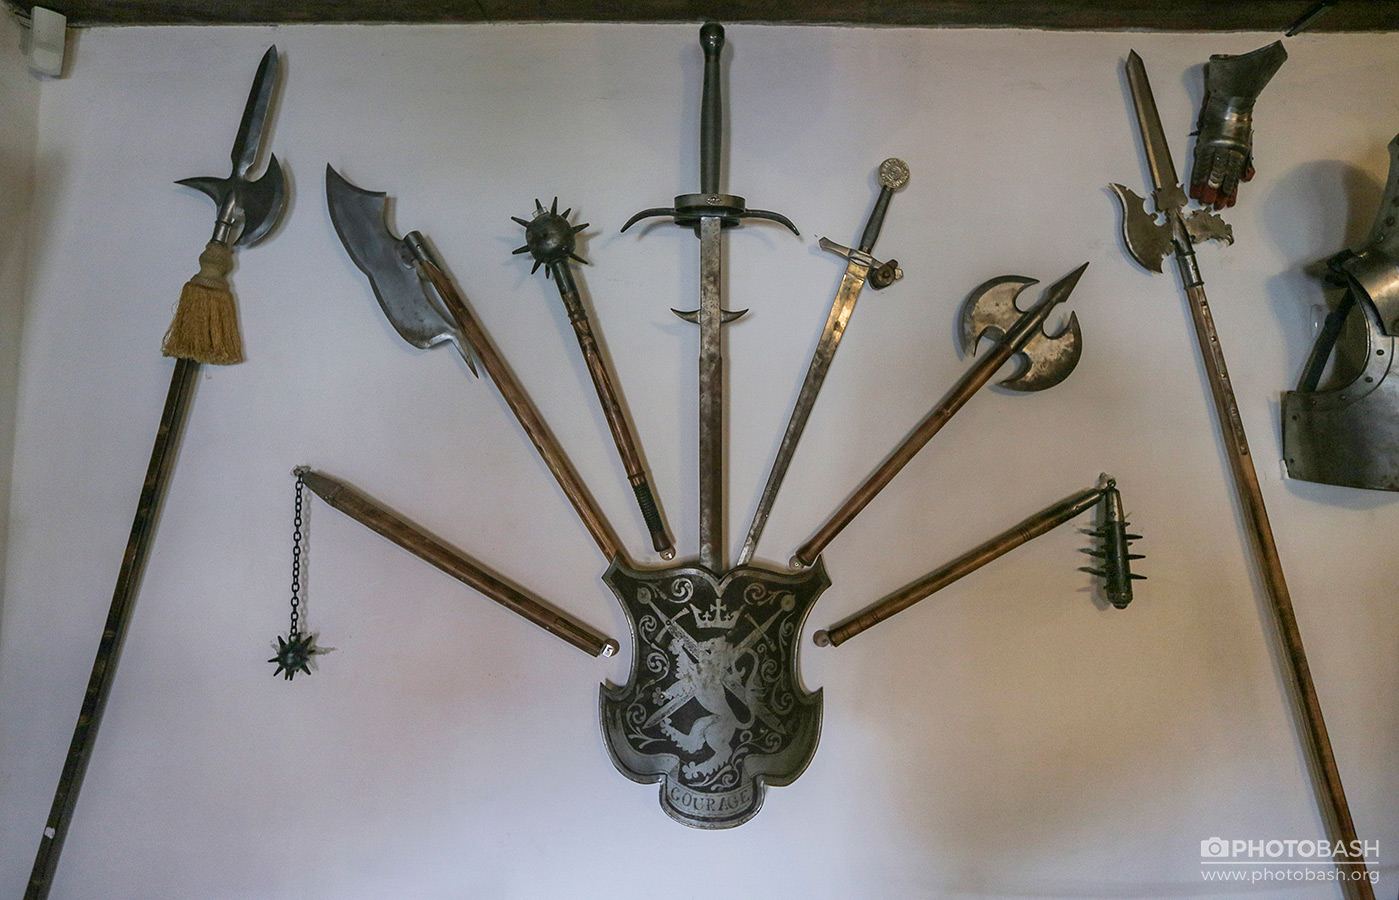 Medieval-Weapons-Shield-Sword-Axe-Flail.jpg